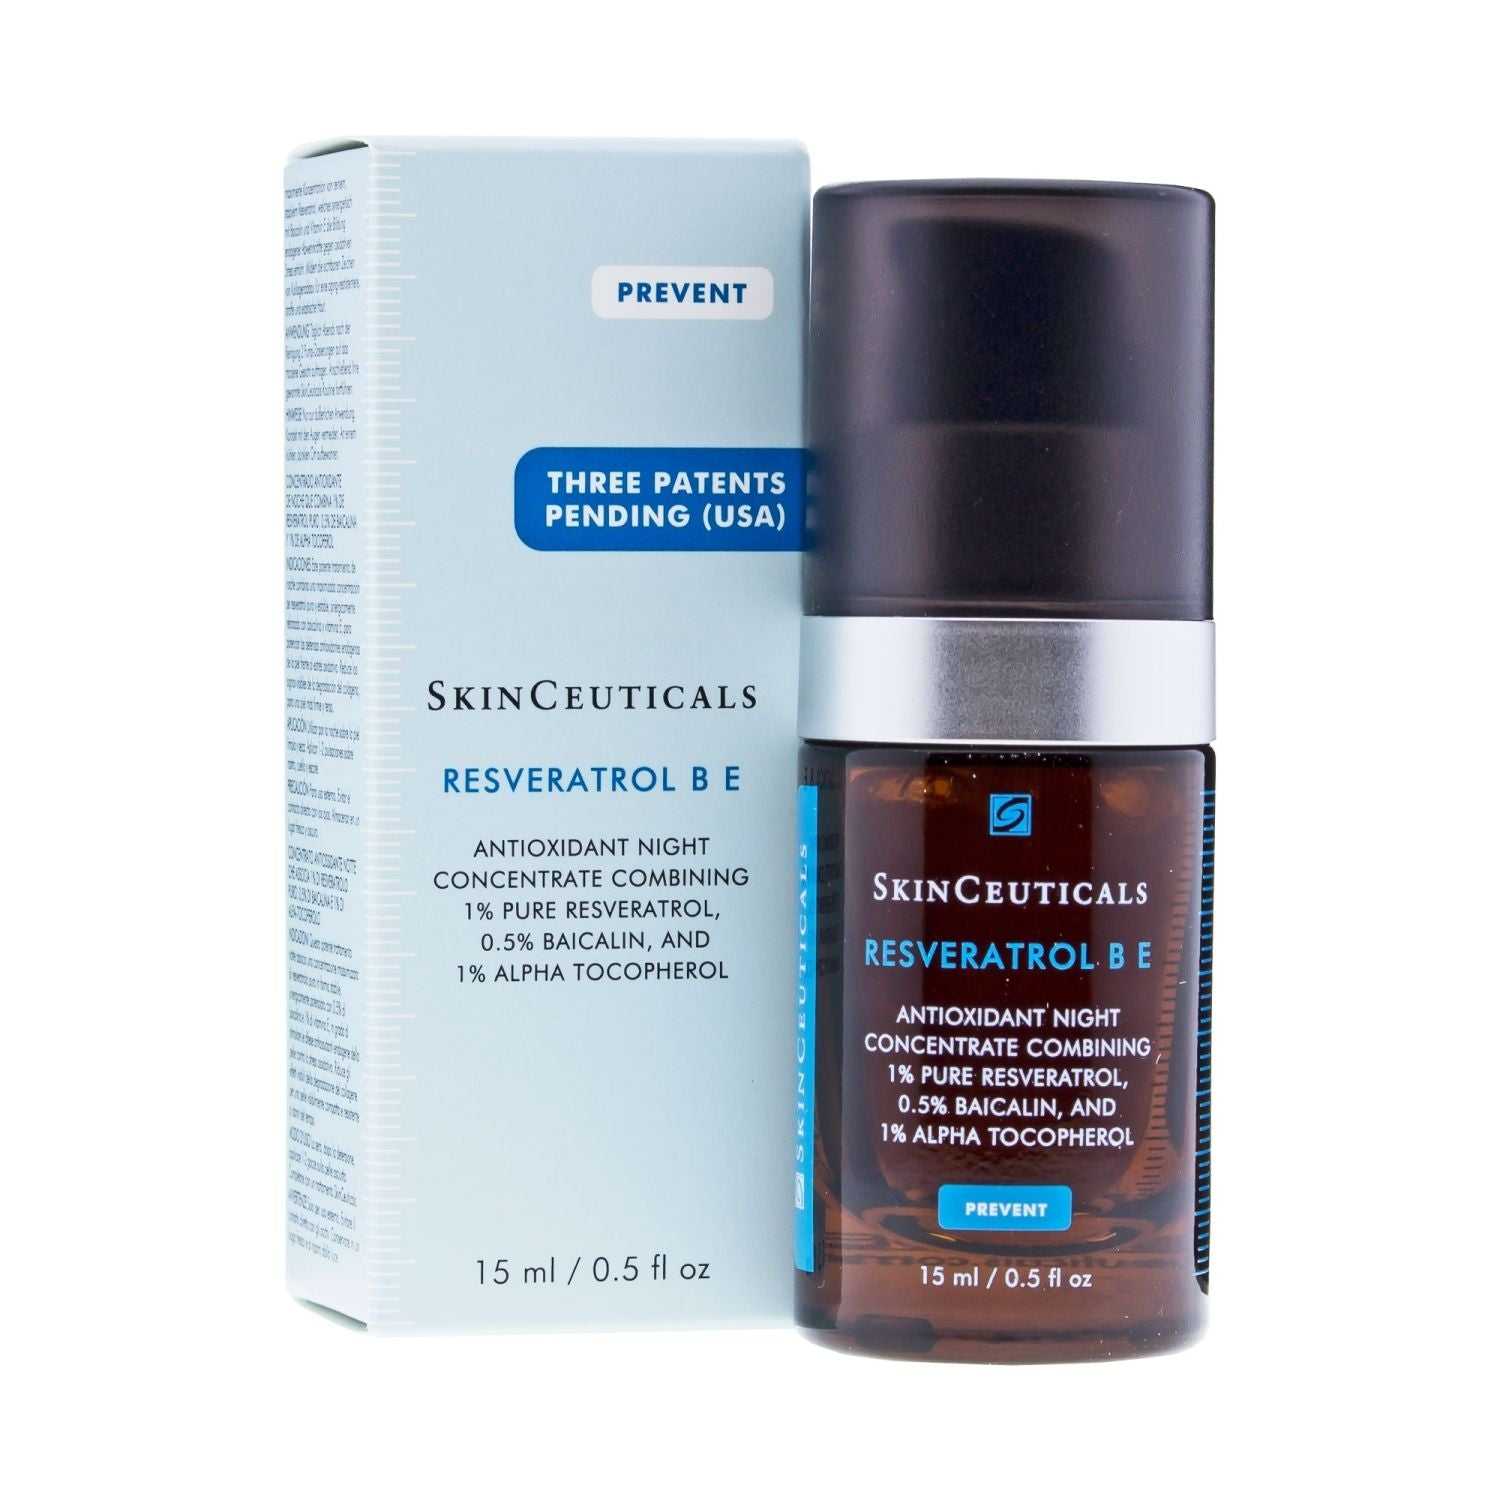 SkinCeuticals Resveratrol BE 30 ml